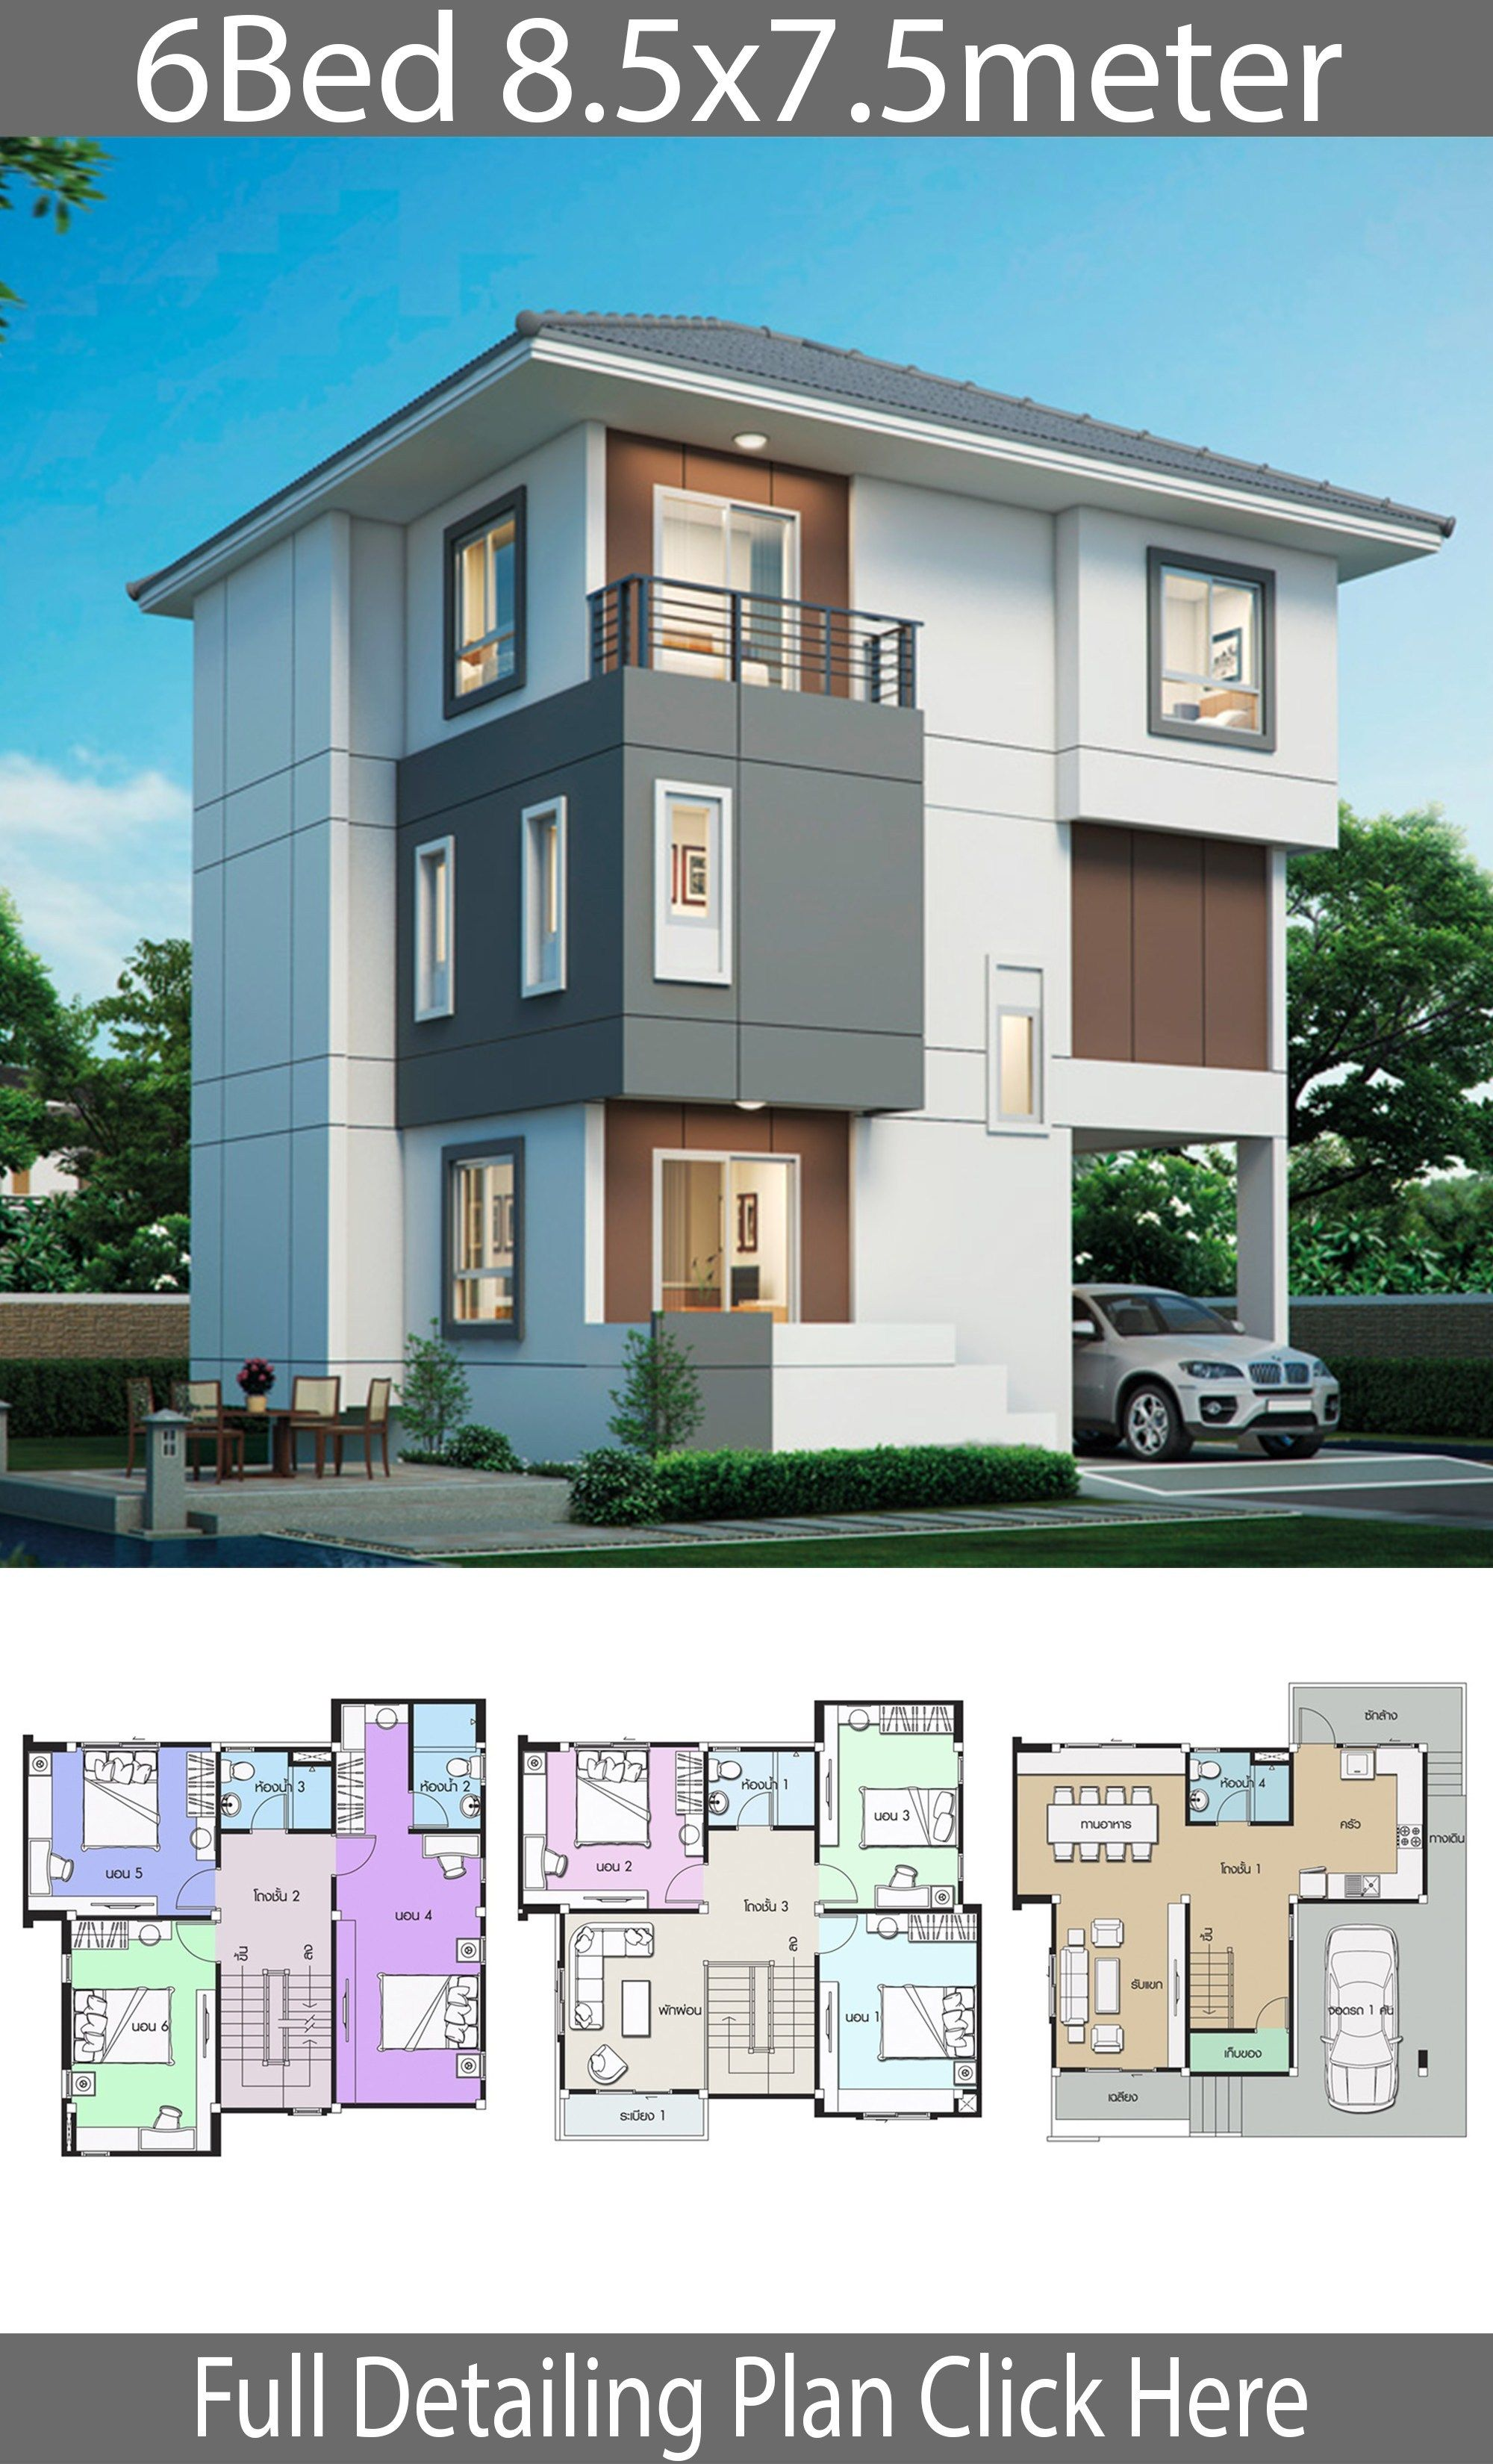 House Design Plan 8 5x7 5m With 6 Bedrooms Home Design With Plan House Plan Gallery House Designs Exterior Architecture House